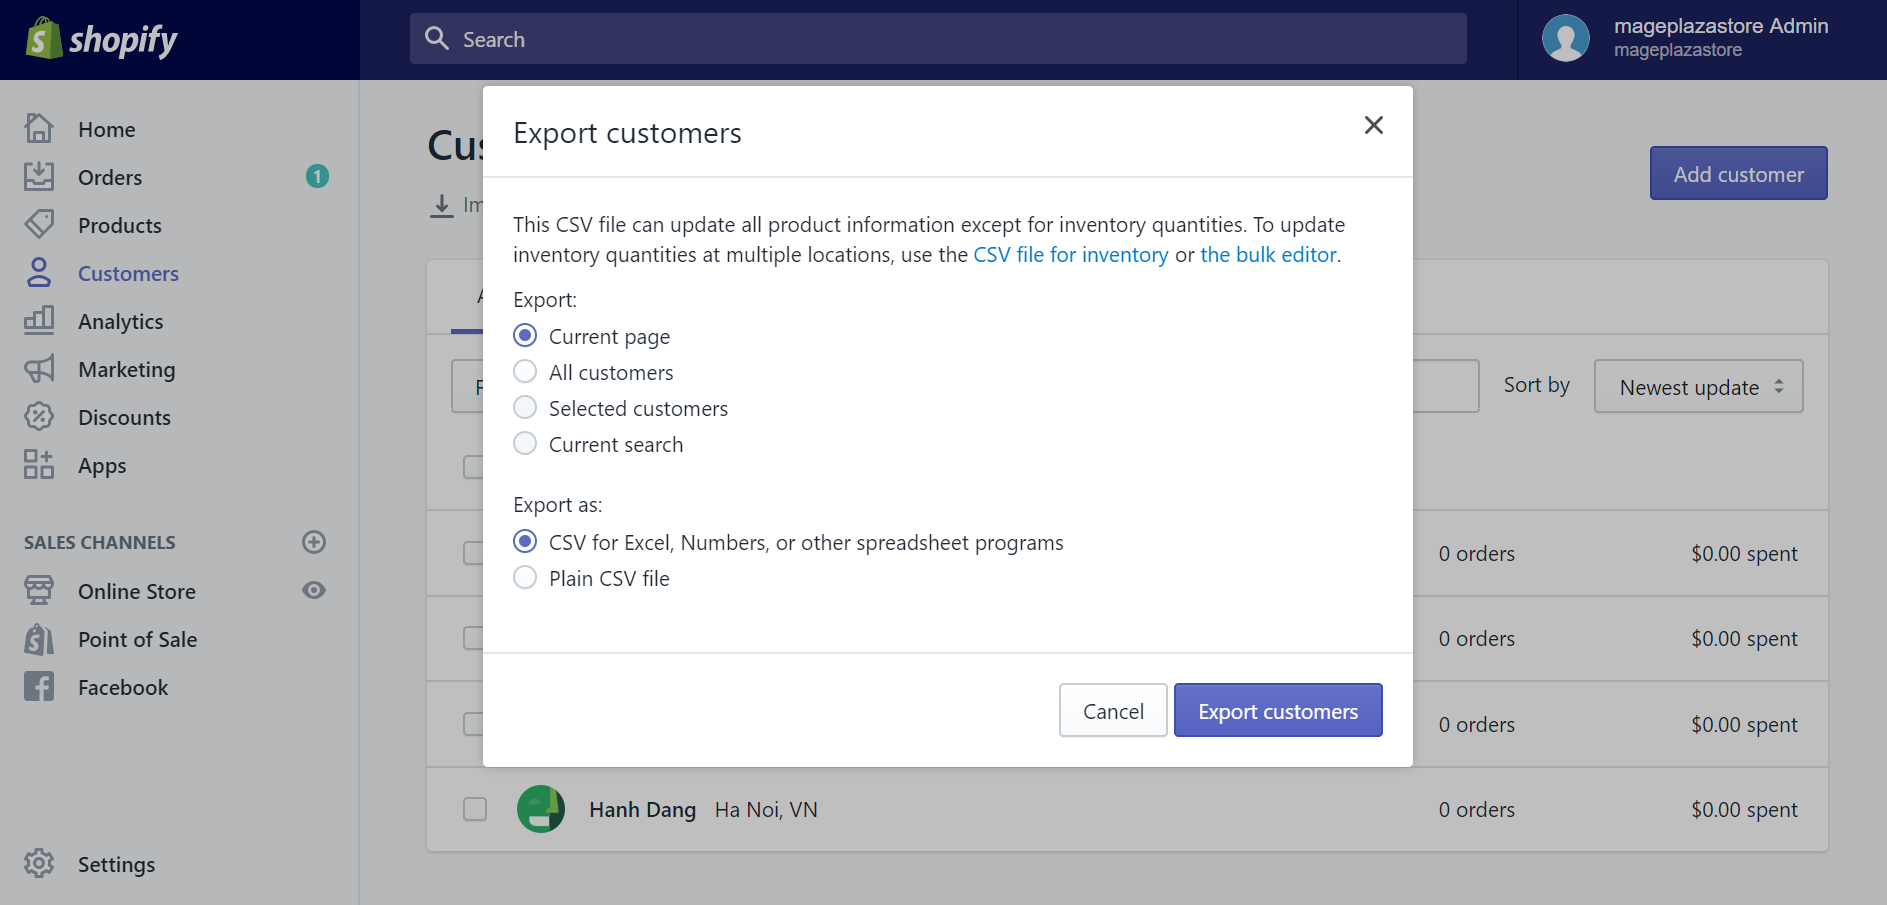 How to export existing customers to a CSV file